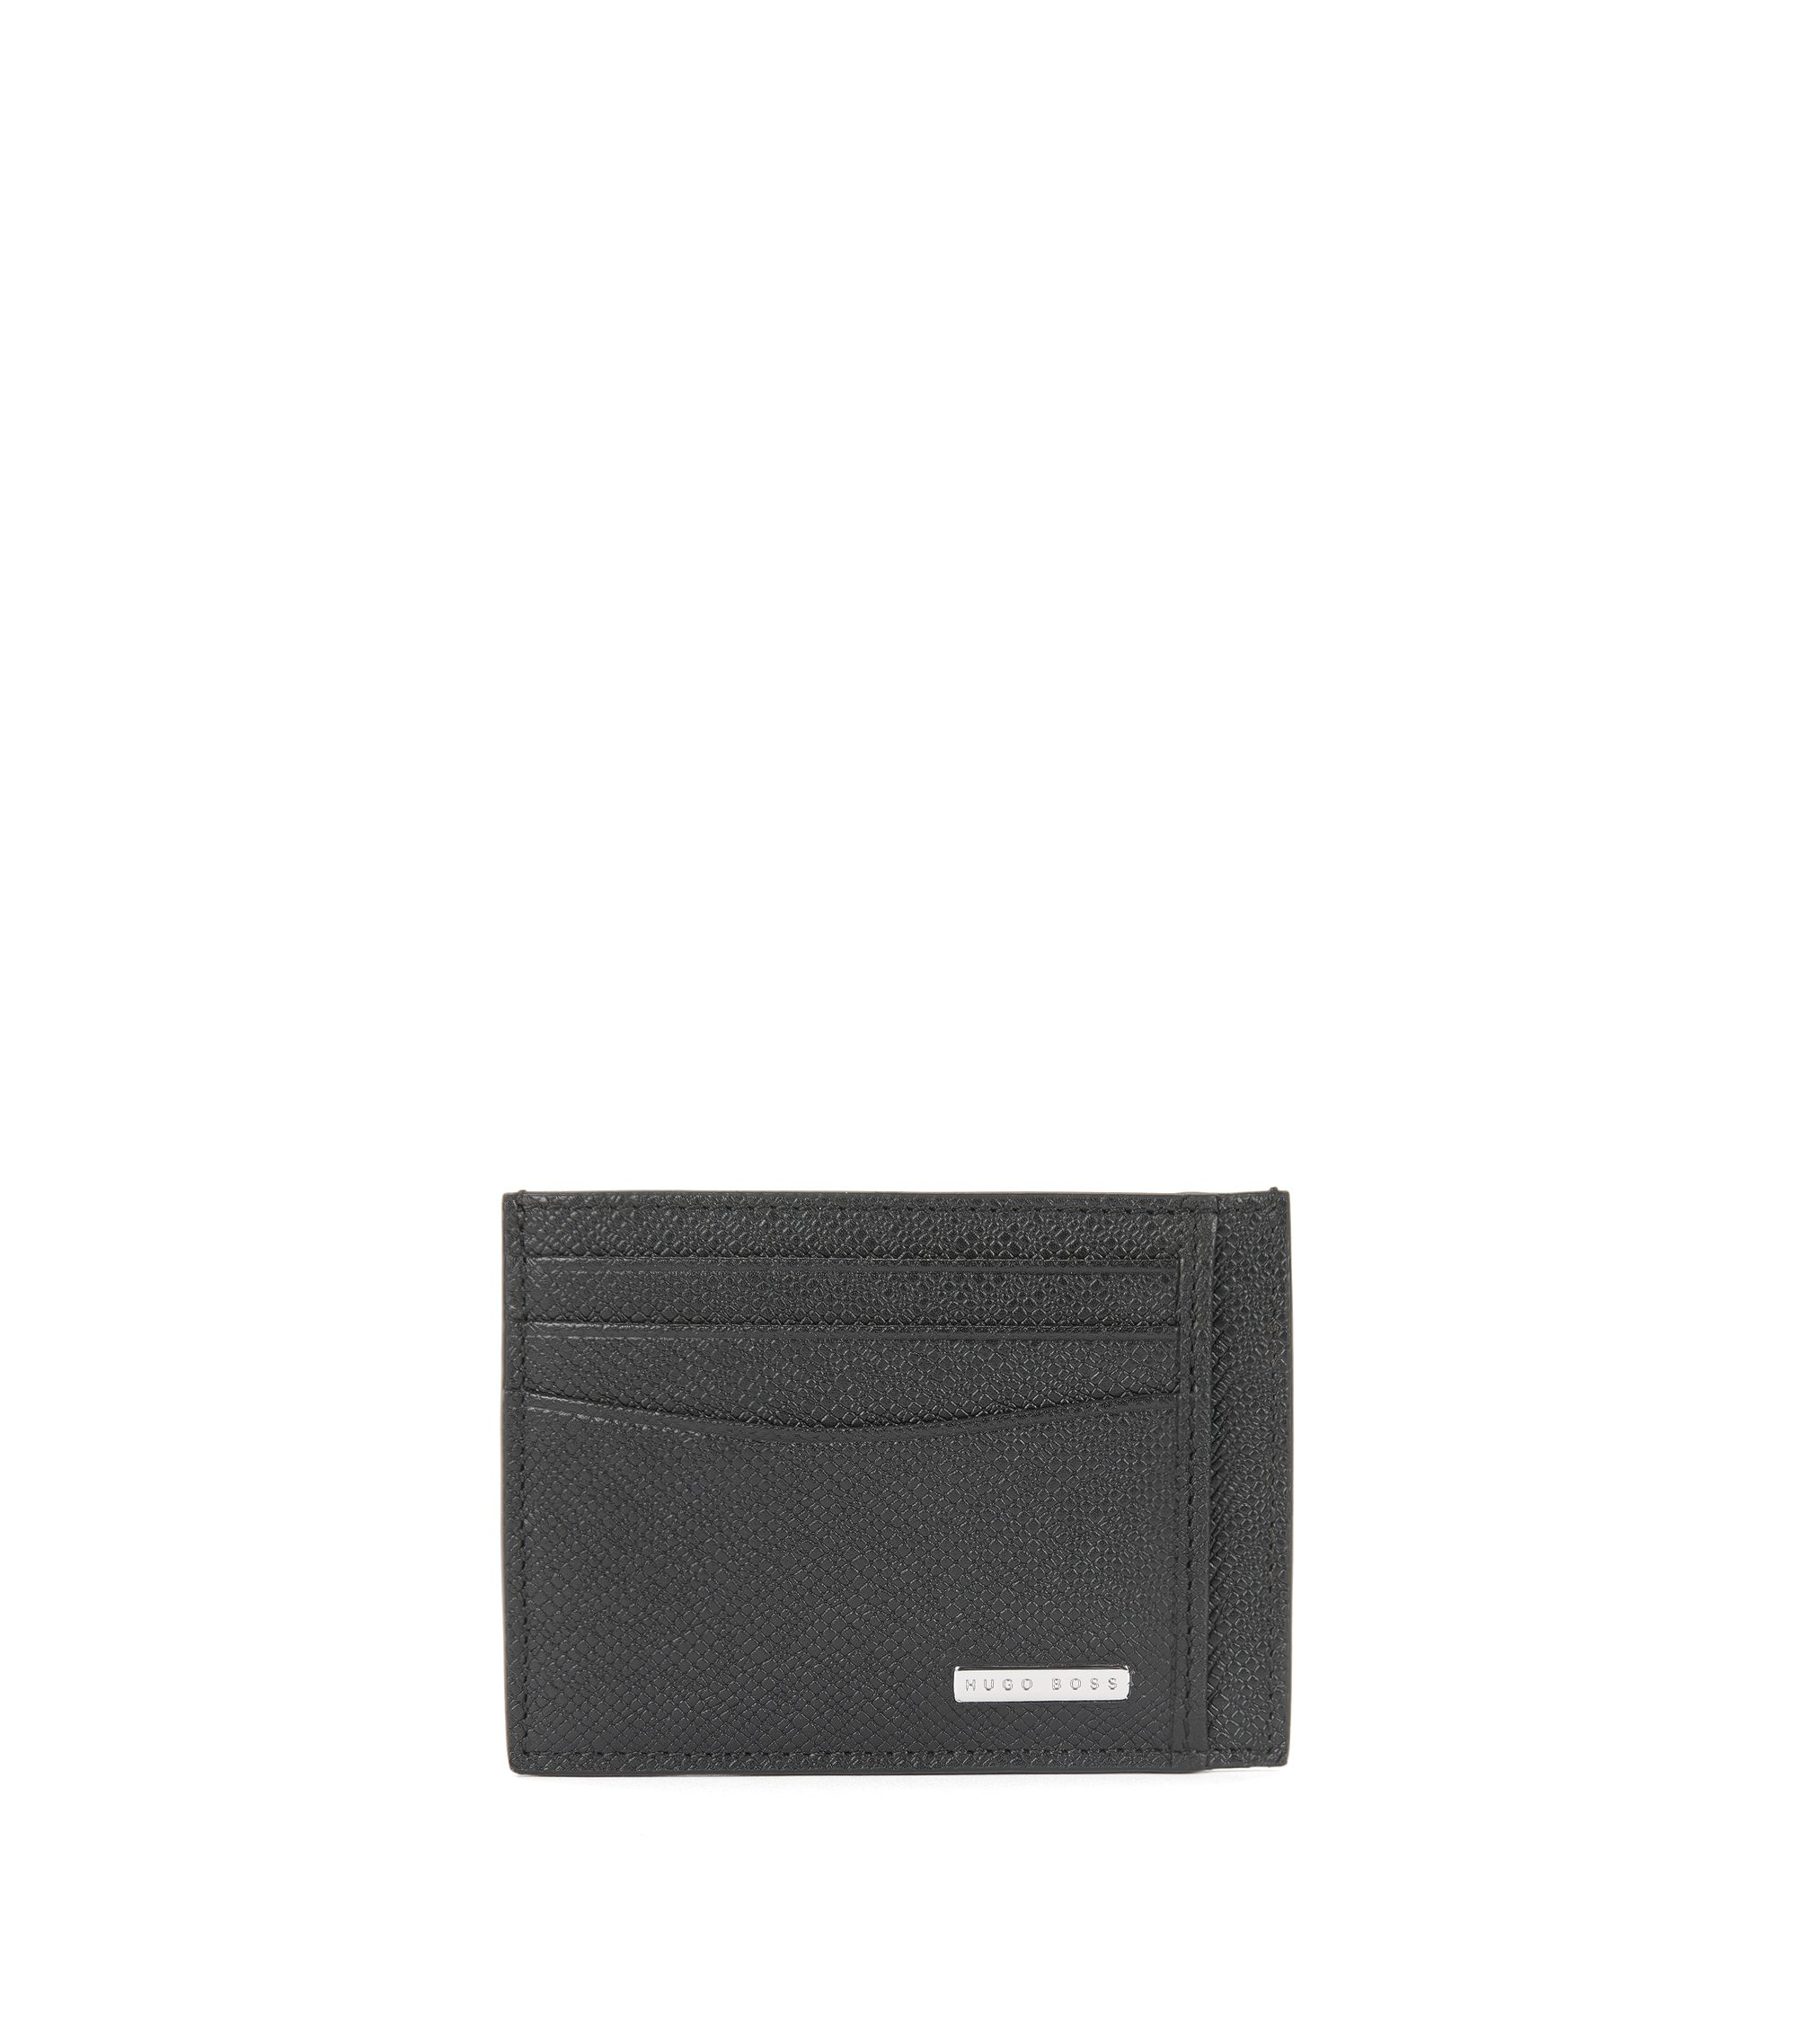 Palmellato-Embossed Leather Card Holder | Signature S Card N, Black